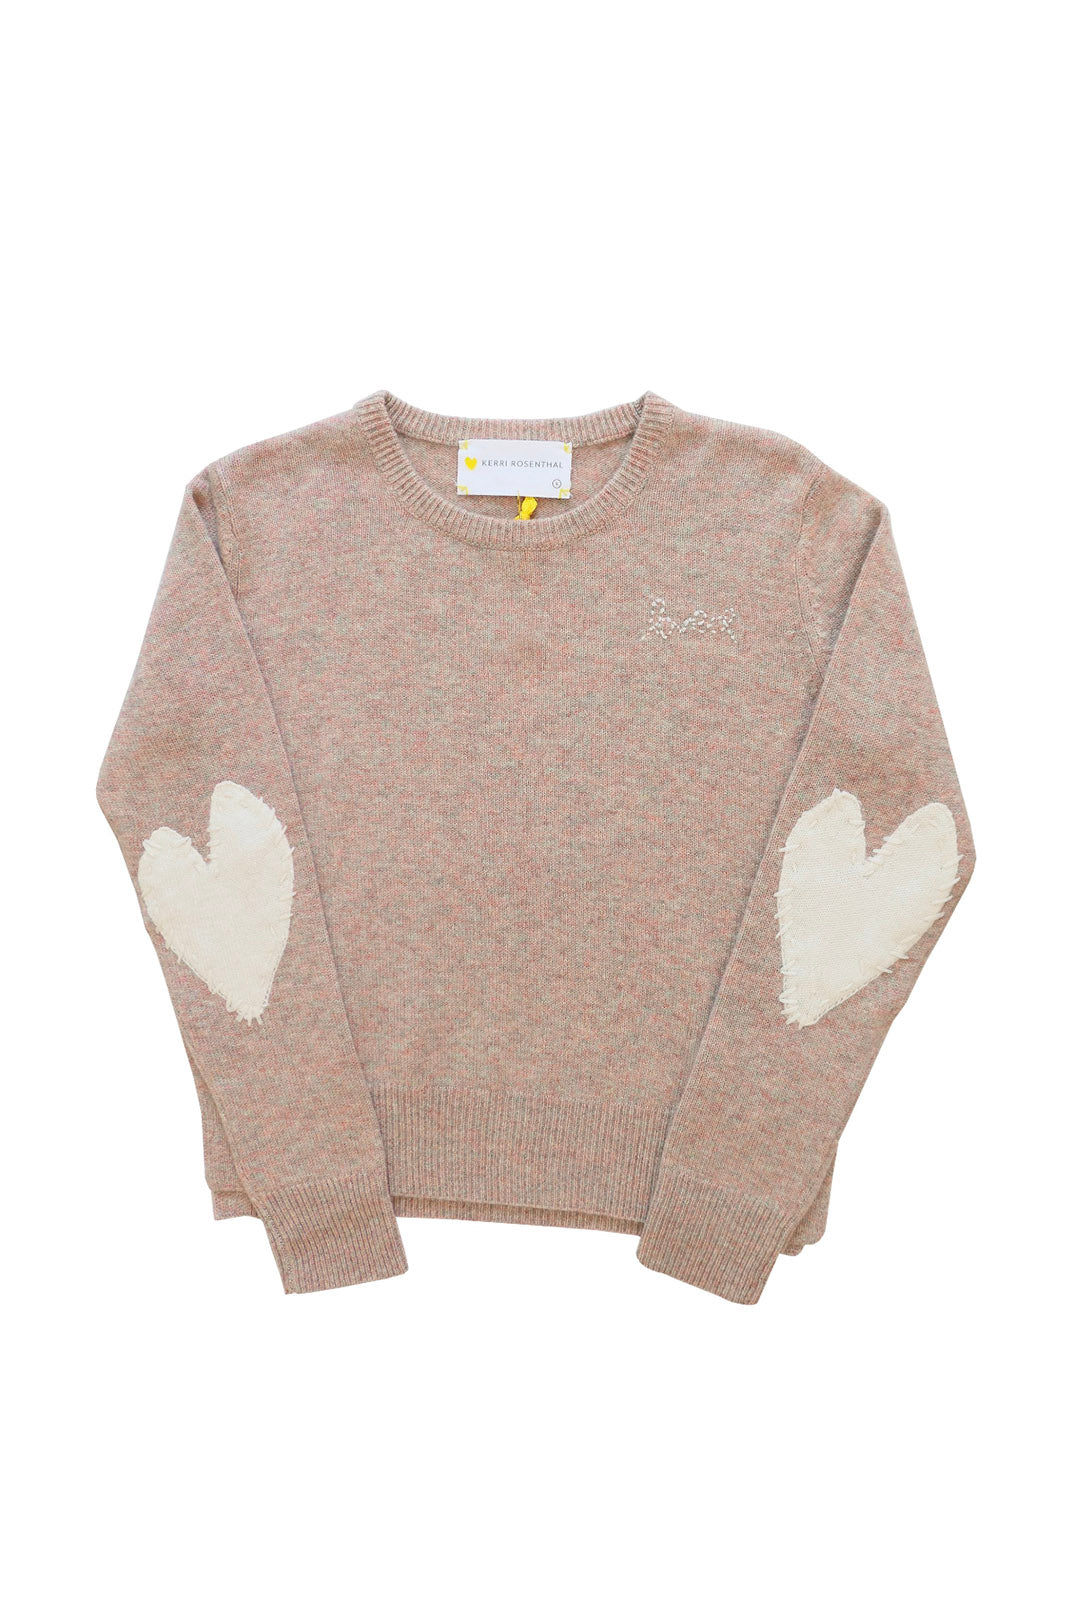 Patchwork Love Cashmere Sweater, Marled/Ivory